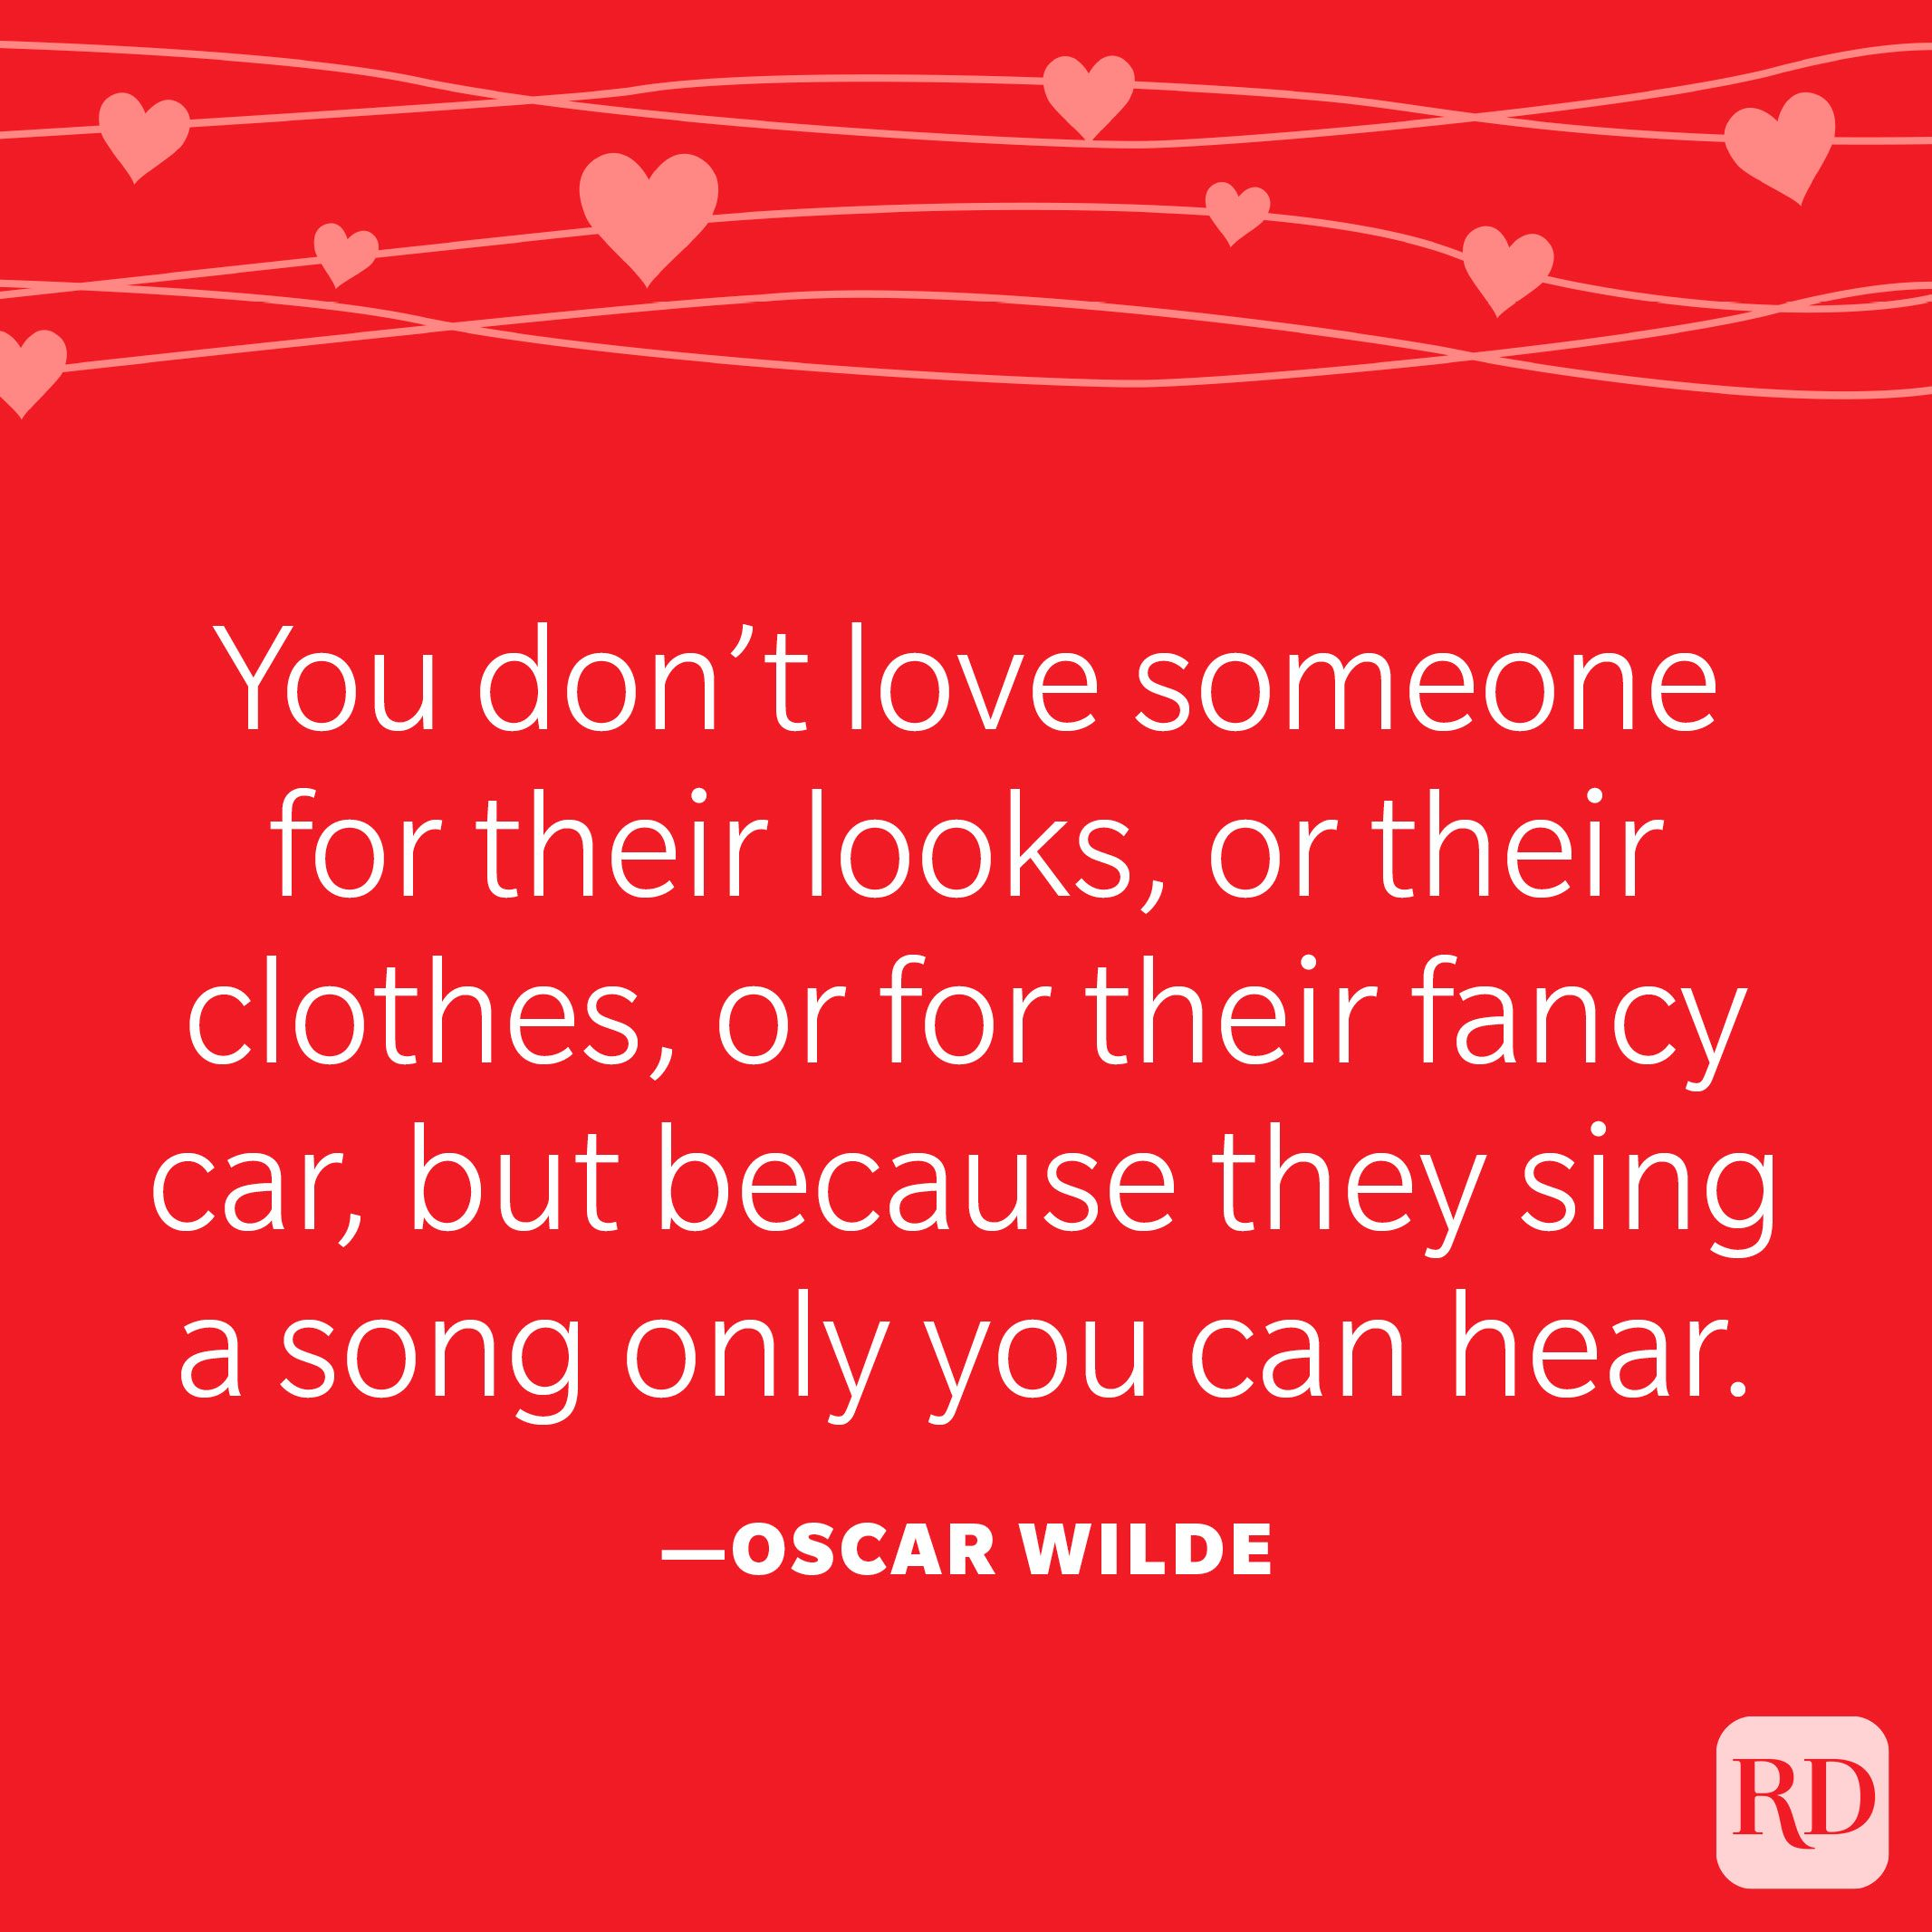 """""""You don't love someone for their looks, or their clothes, or for their fancy car, but because they sing a song only you can hear."""" —Oscar Wilde"""